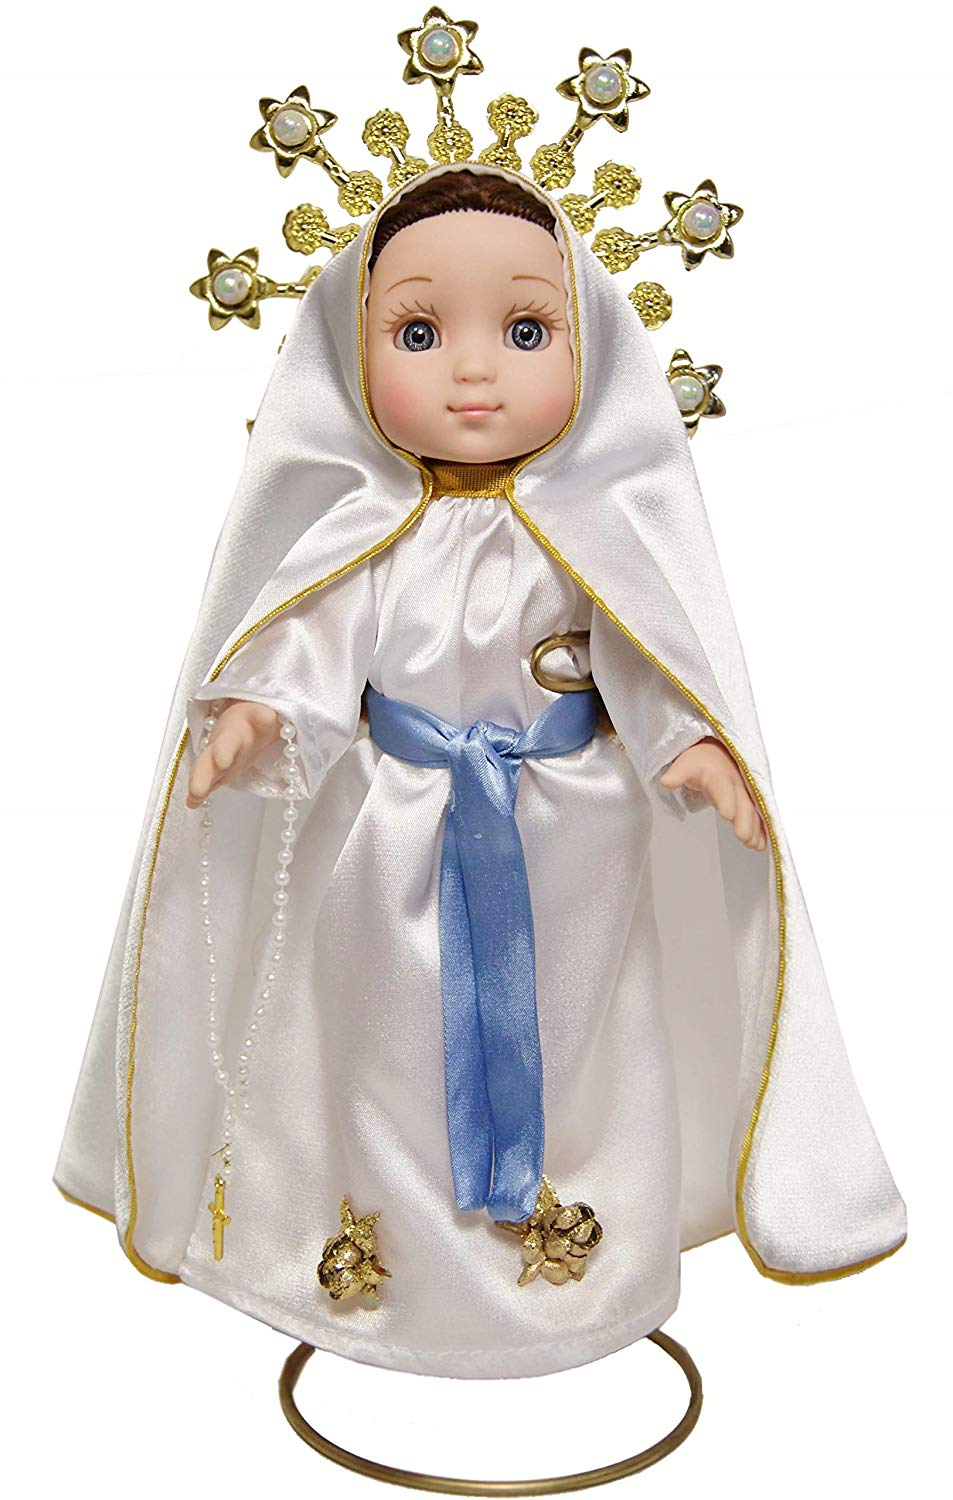 MARIA CONTIGO / Our Lady of Lourdes 10'' Doll with Rosary